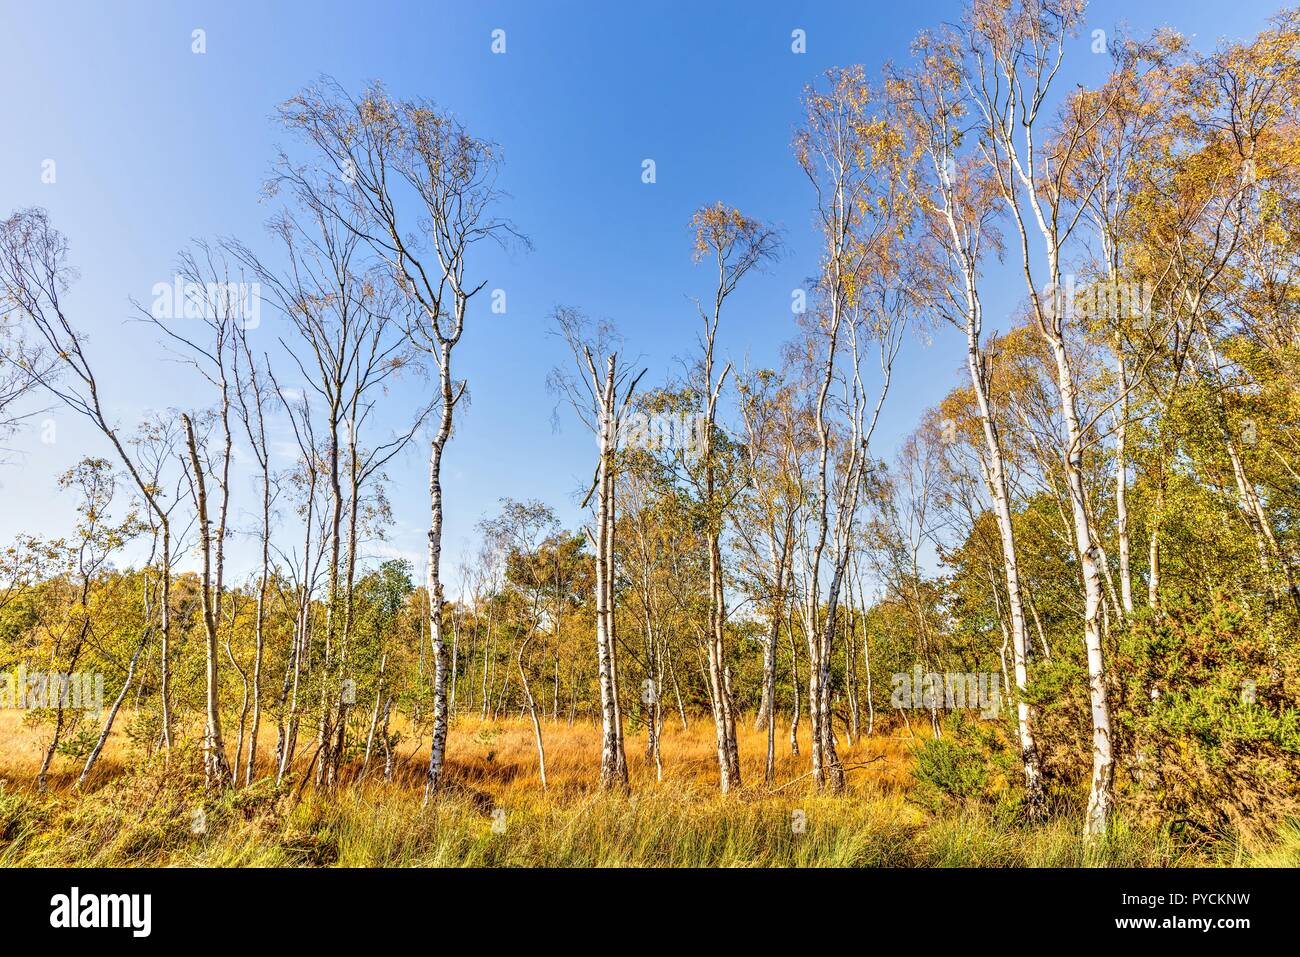 A spread of silver birch trees on moorland in autumn. Some have already lost all their leaves, others are adorned with golden orange foliage. Stock Photo